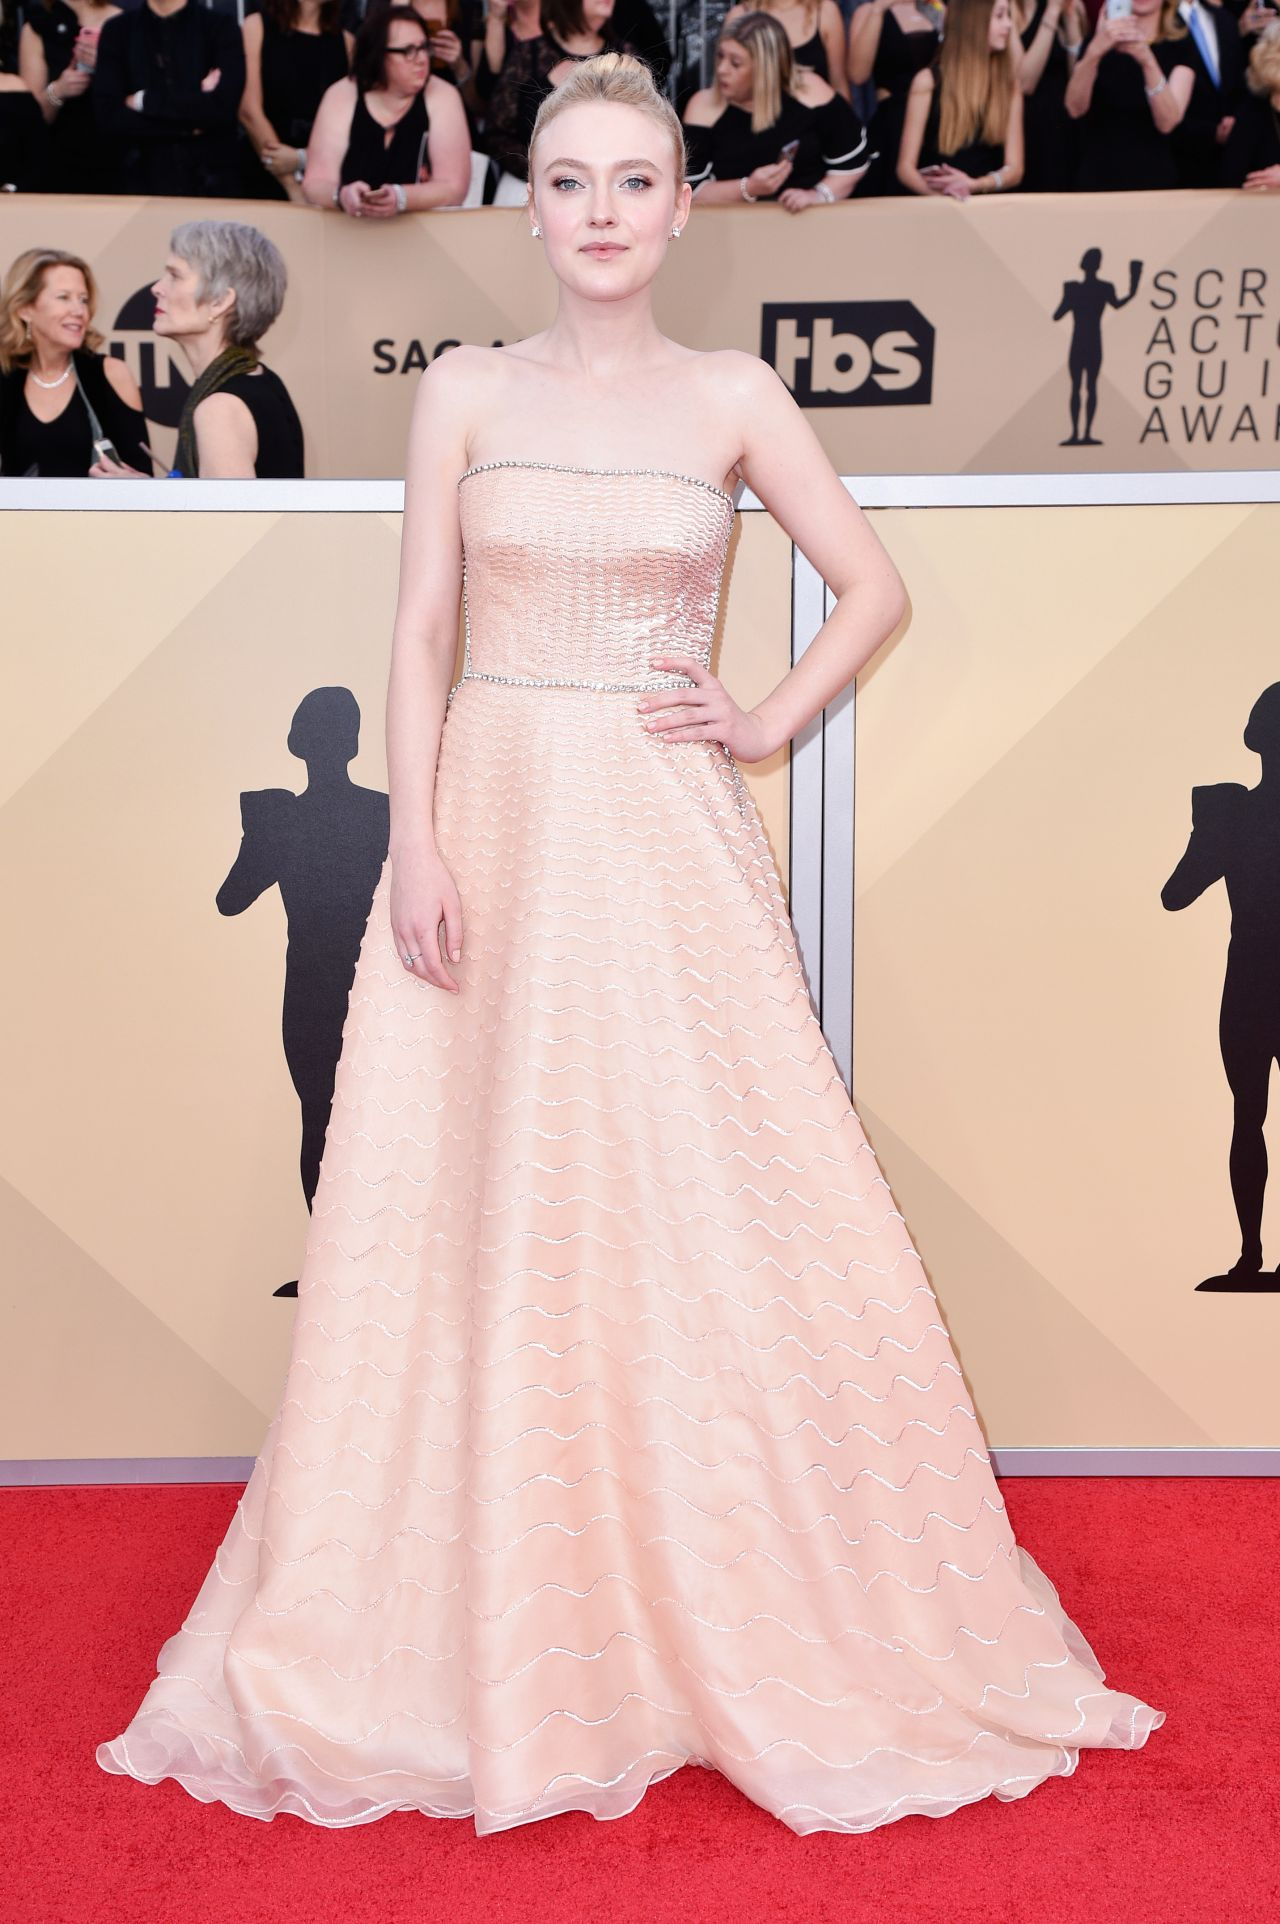 http://celebmafia.com/wp-content/uploads/2018/01/dakota-fanning-2018-sag-awards-in-la-12.jpg